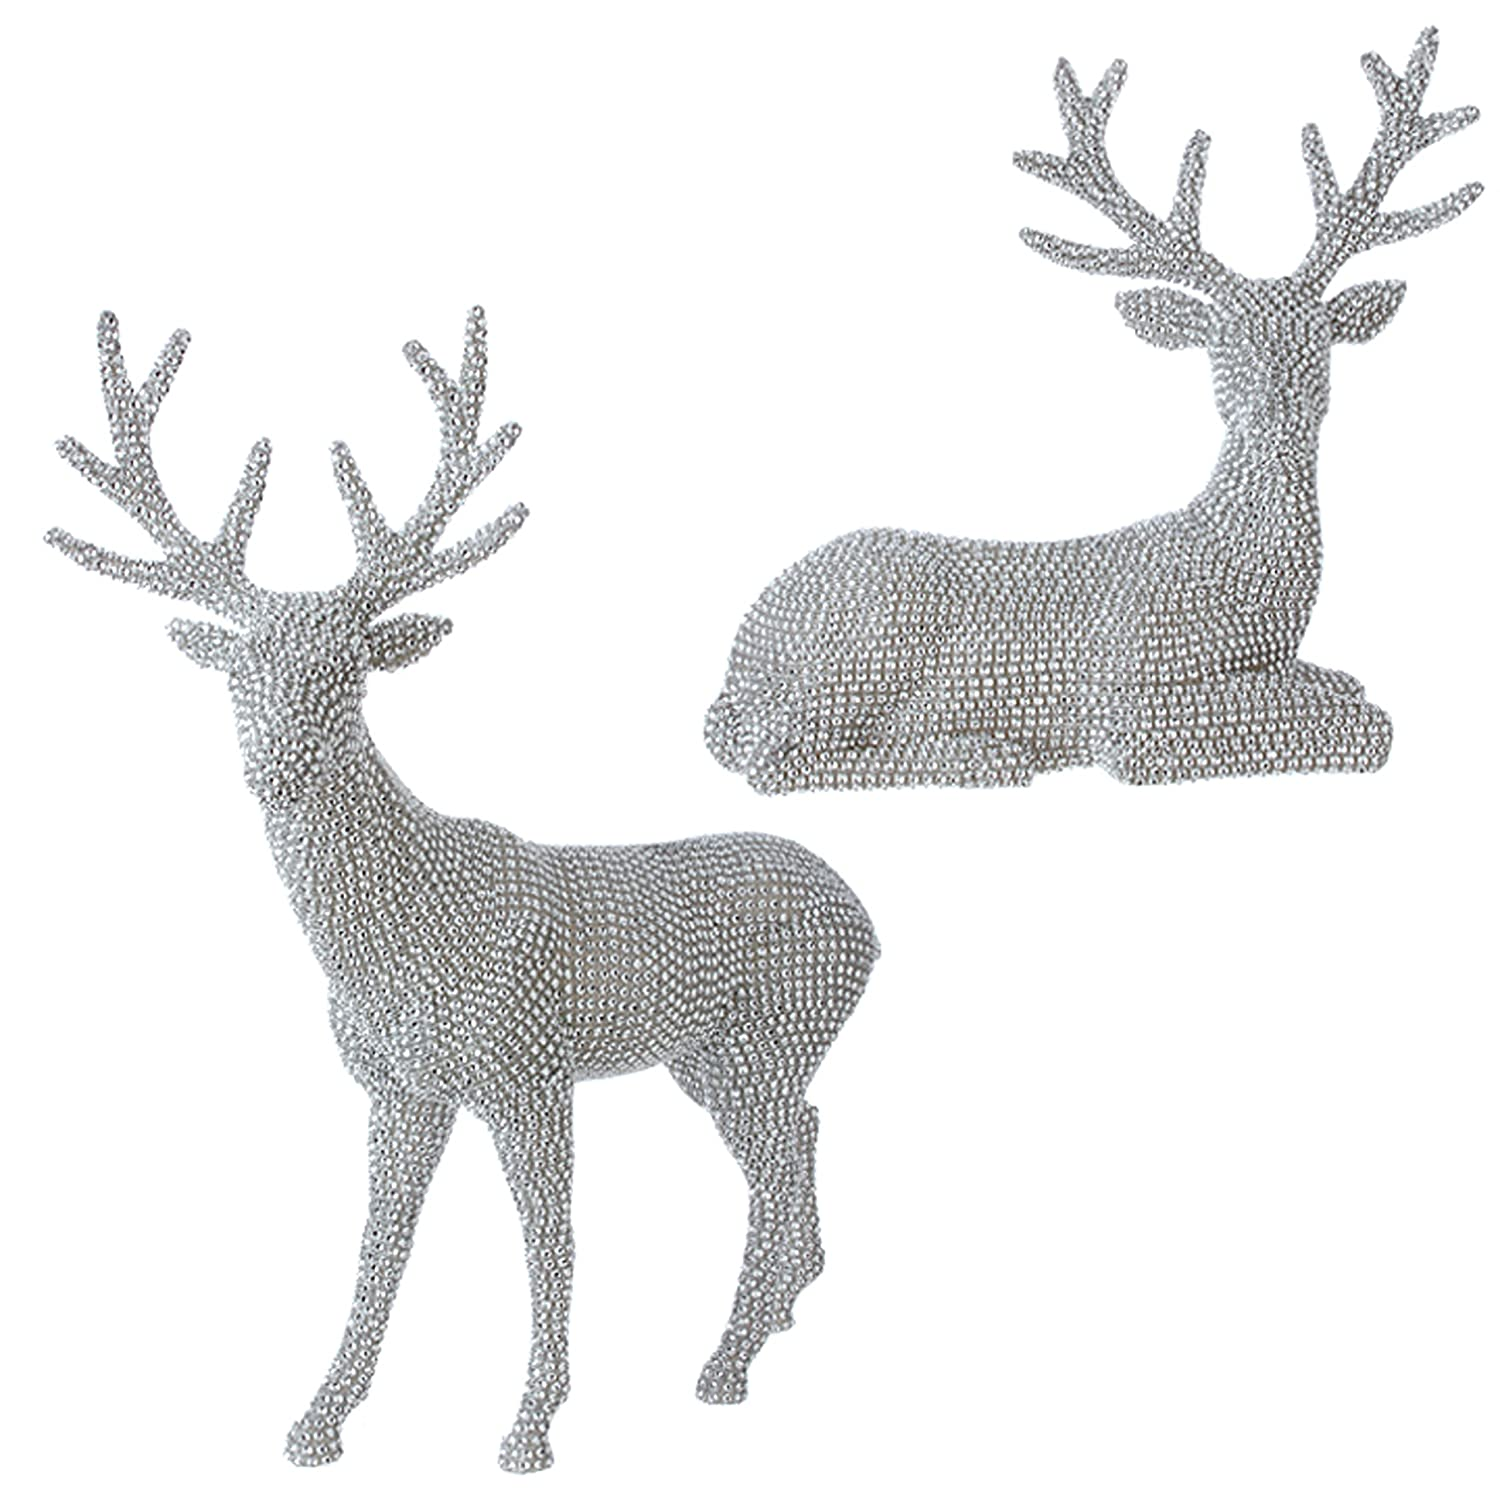 Silver Rhinestone Christmas Glittered Deer 2-Pc Set | ChristmasTablescapeDecor.com